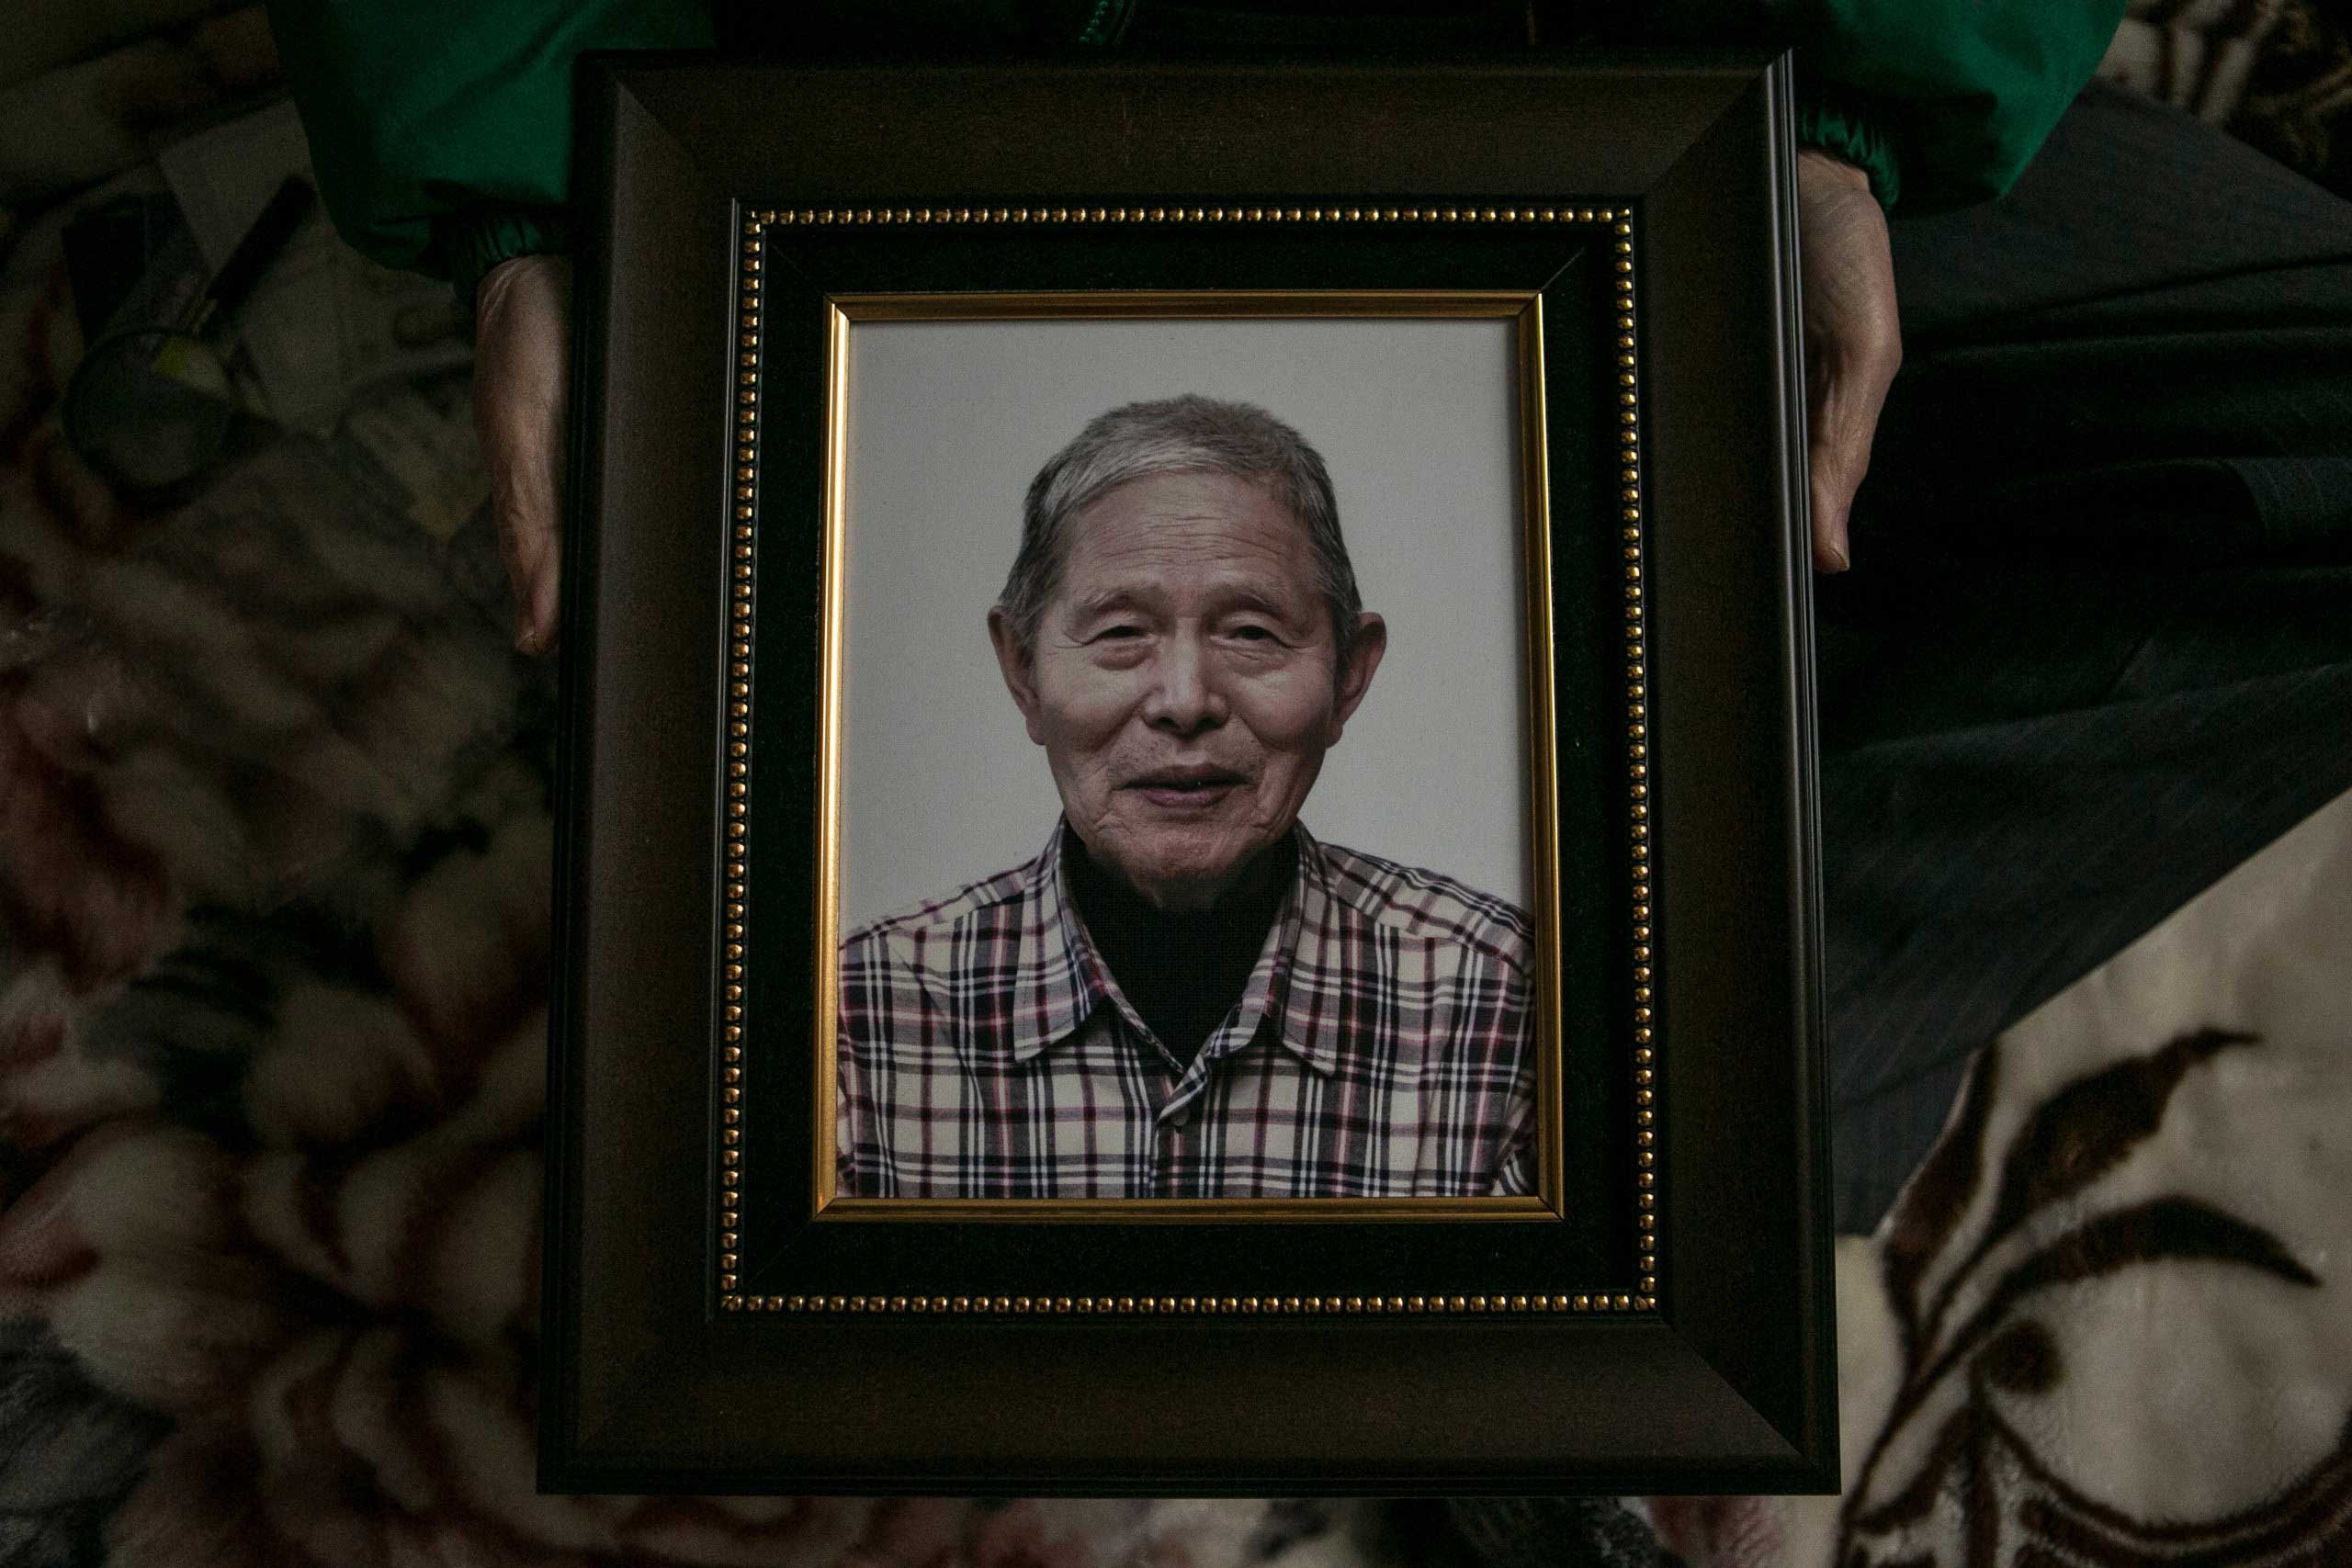 Ham Hak-joon shows a photo of him, which will be used in his funeral, in his one-room home on top of the hill in Jongro District, Seoul, Dec. 27, 2014.